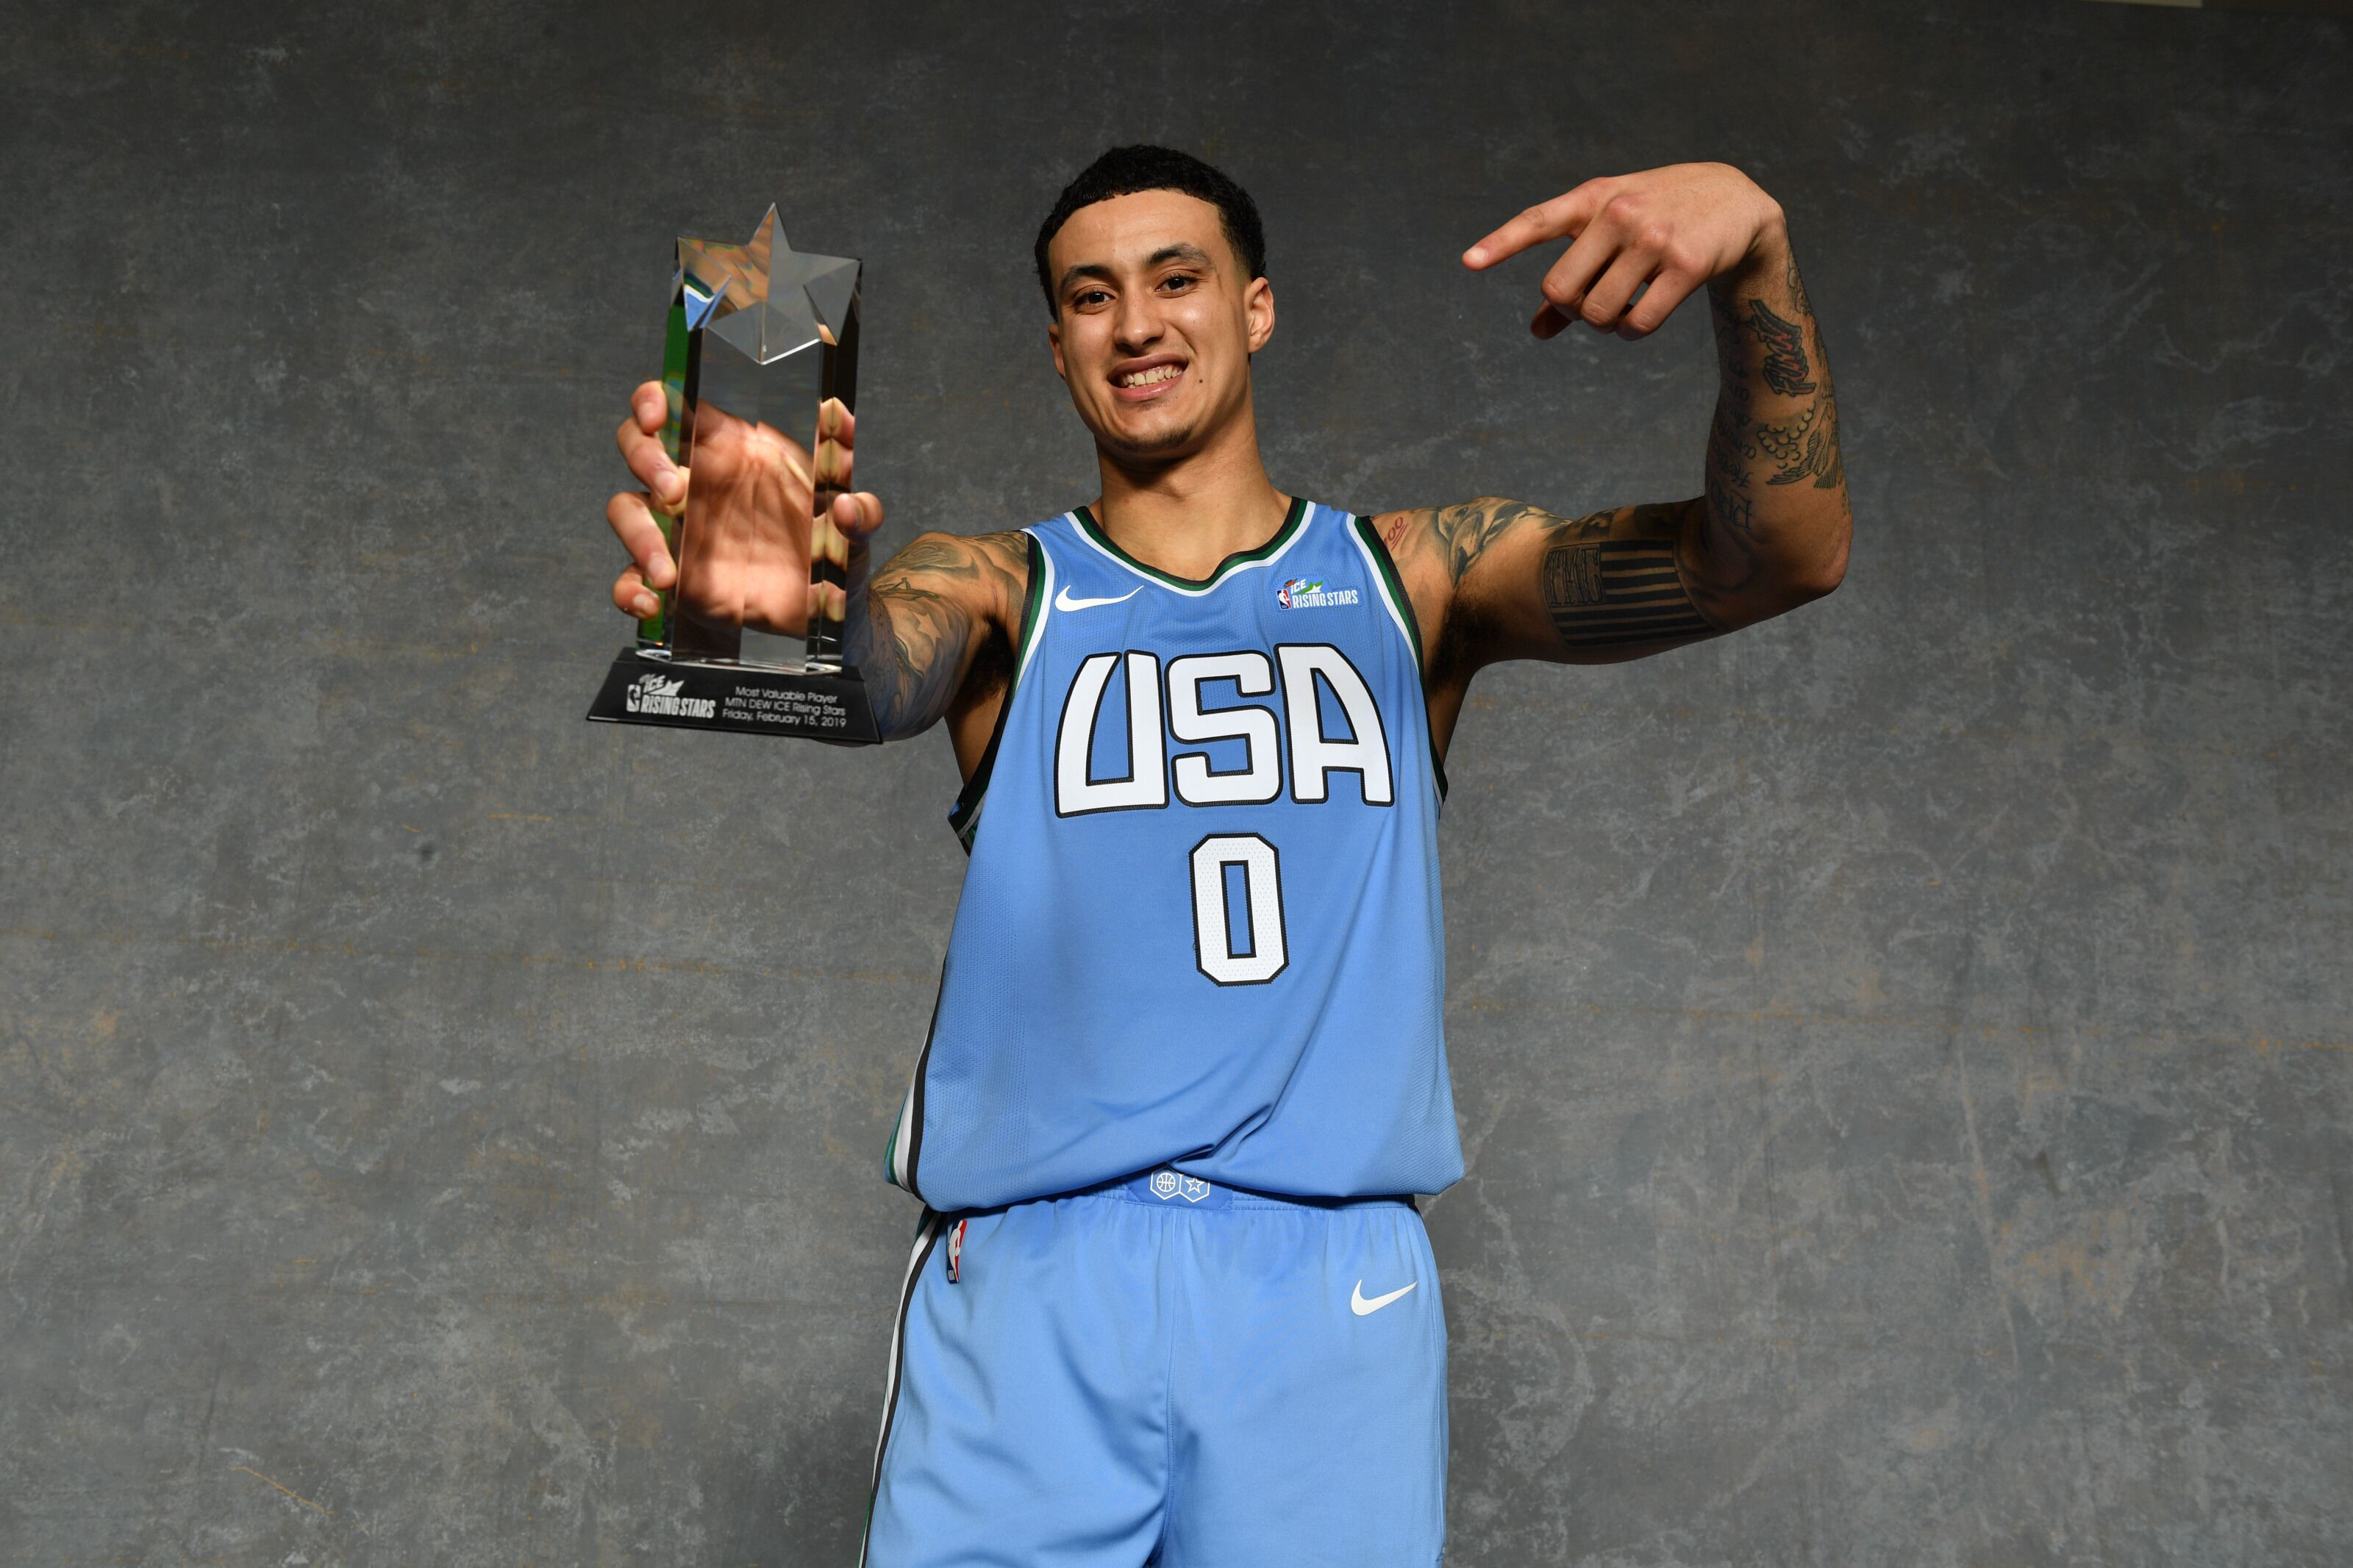 100% authentic e3ccc 3bdd0 Los Angeles Lakers: Kyle Kuzma shines in Rising Stars Challenge